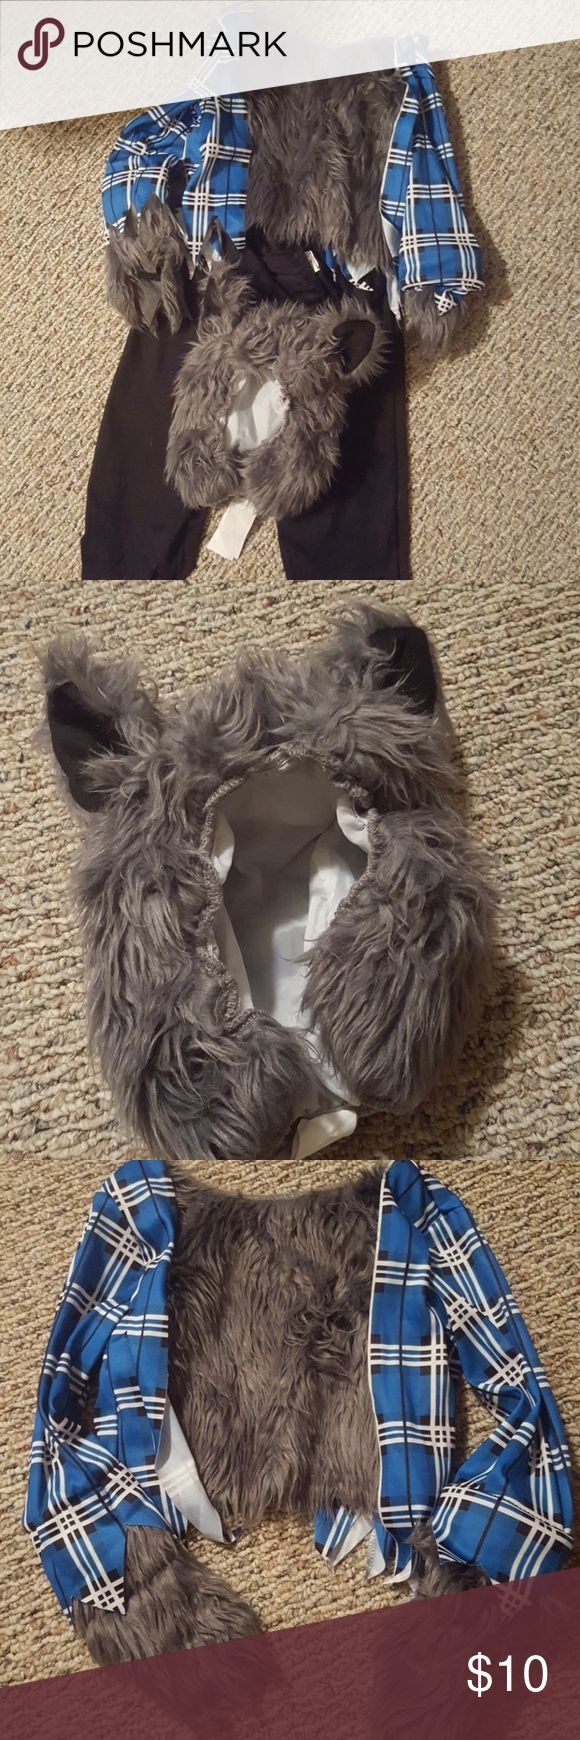 Toddler wolf costume Who's afraid of the big bad wolf...cute toddler wolf that is. Size 2-4T and worn once. Great condition. Dream Weavers Costumes Halloween